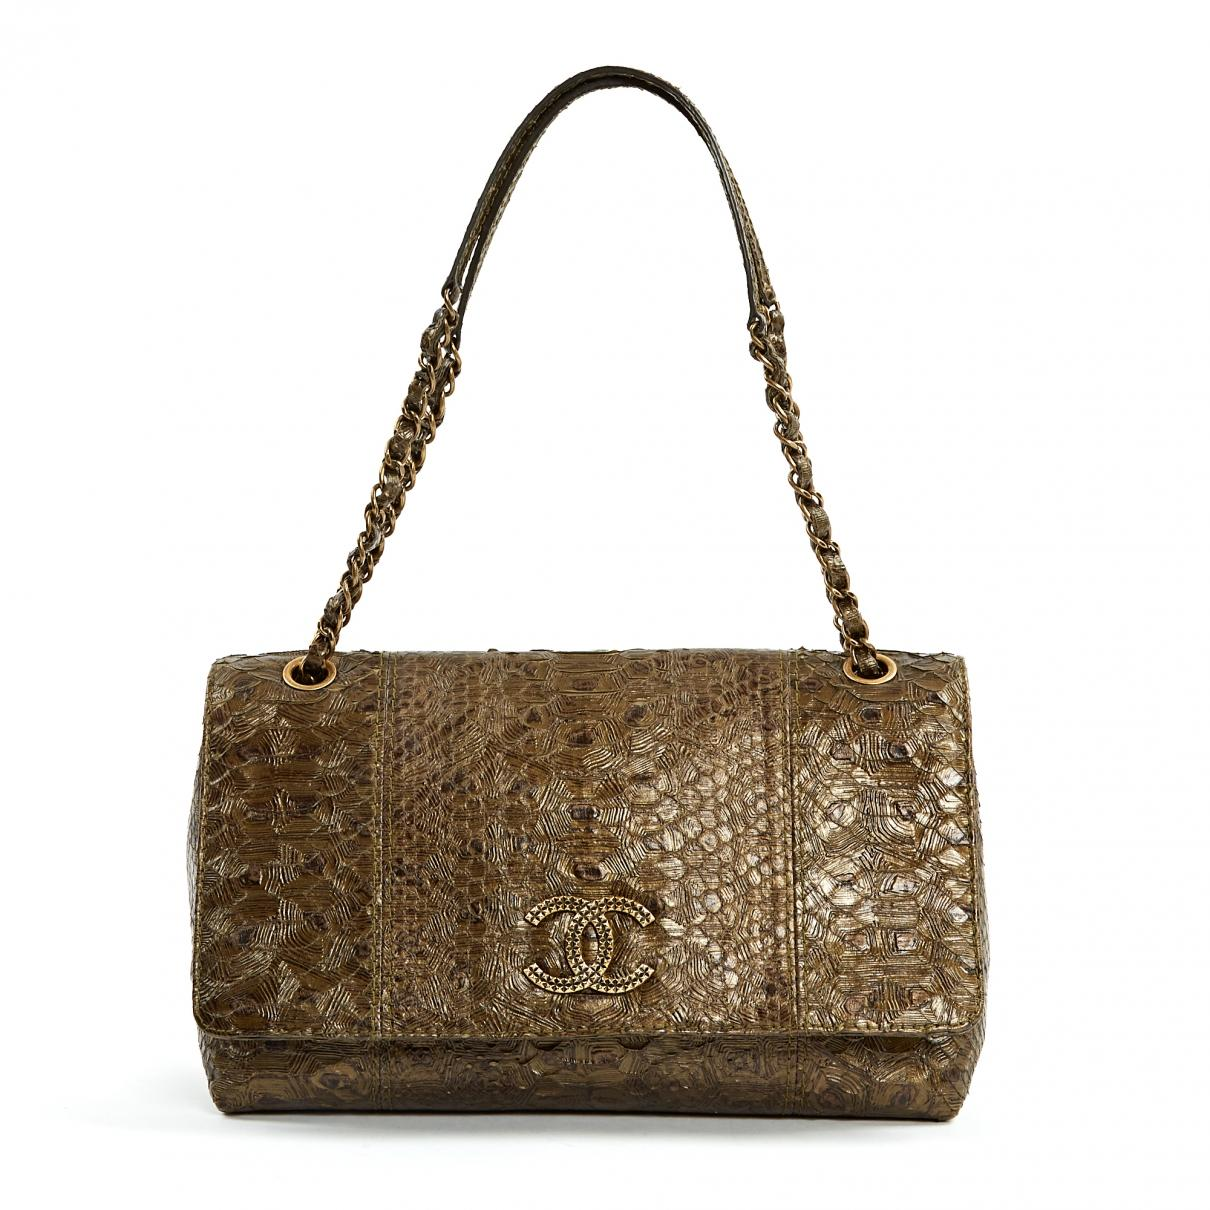 d9635d01ff1a93 Lyst - Chanel Pre-owned Brown Python Handbags in Brown